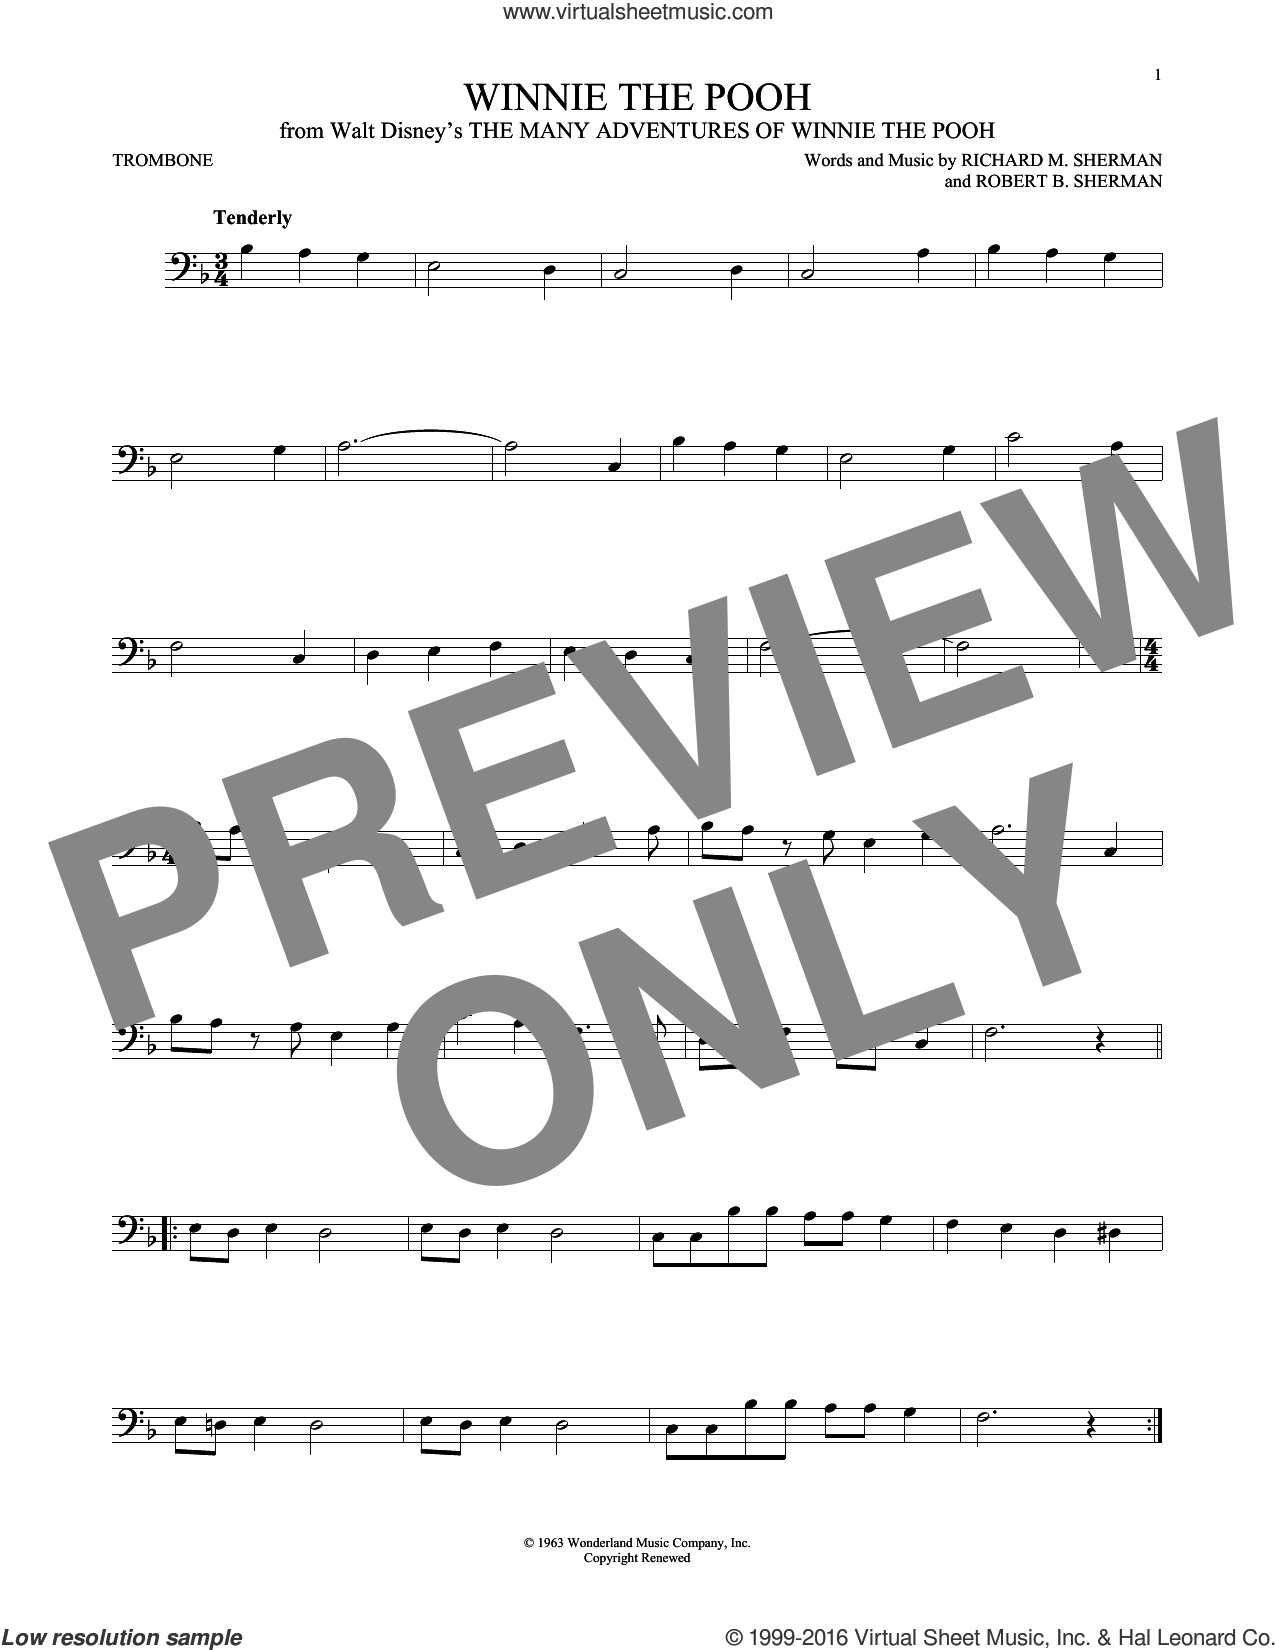 Winnie The Pooh sheet music for trombone solo by Richard M. Sherman and Robert B. Sherman, intermediate skill level